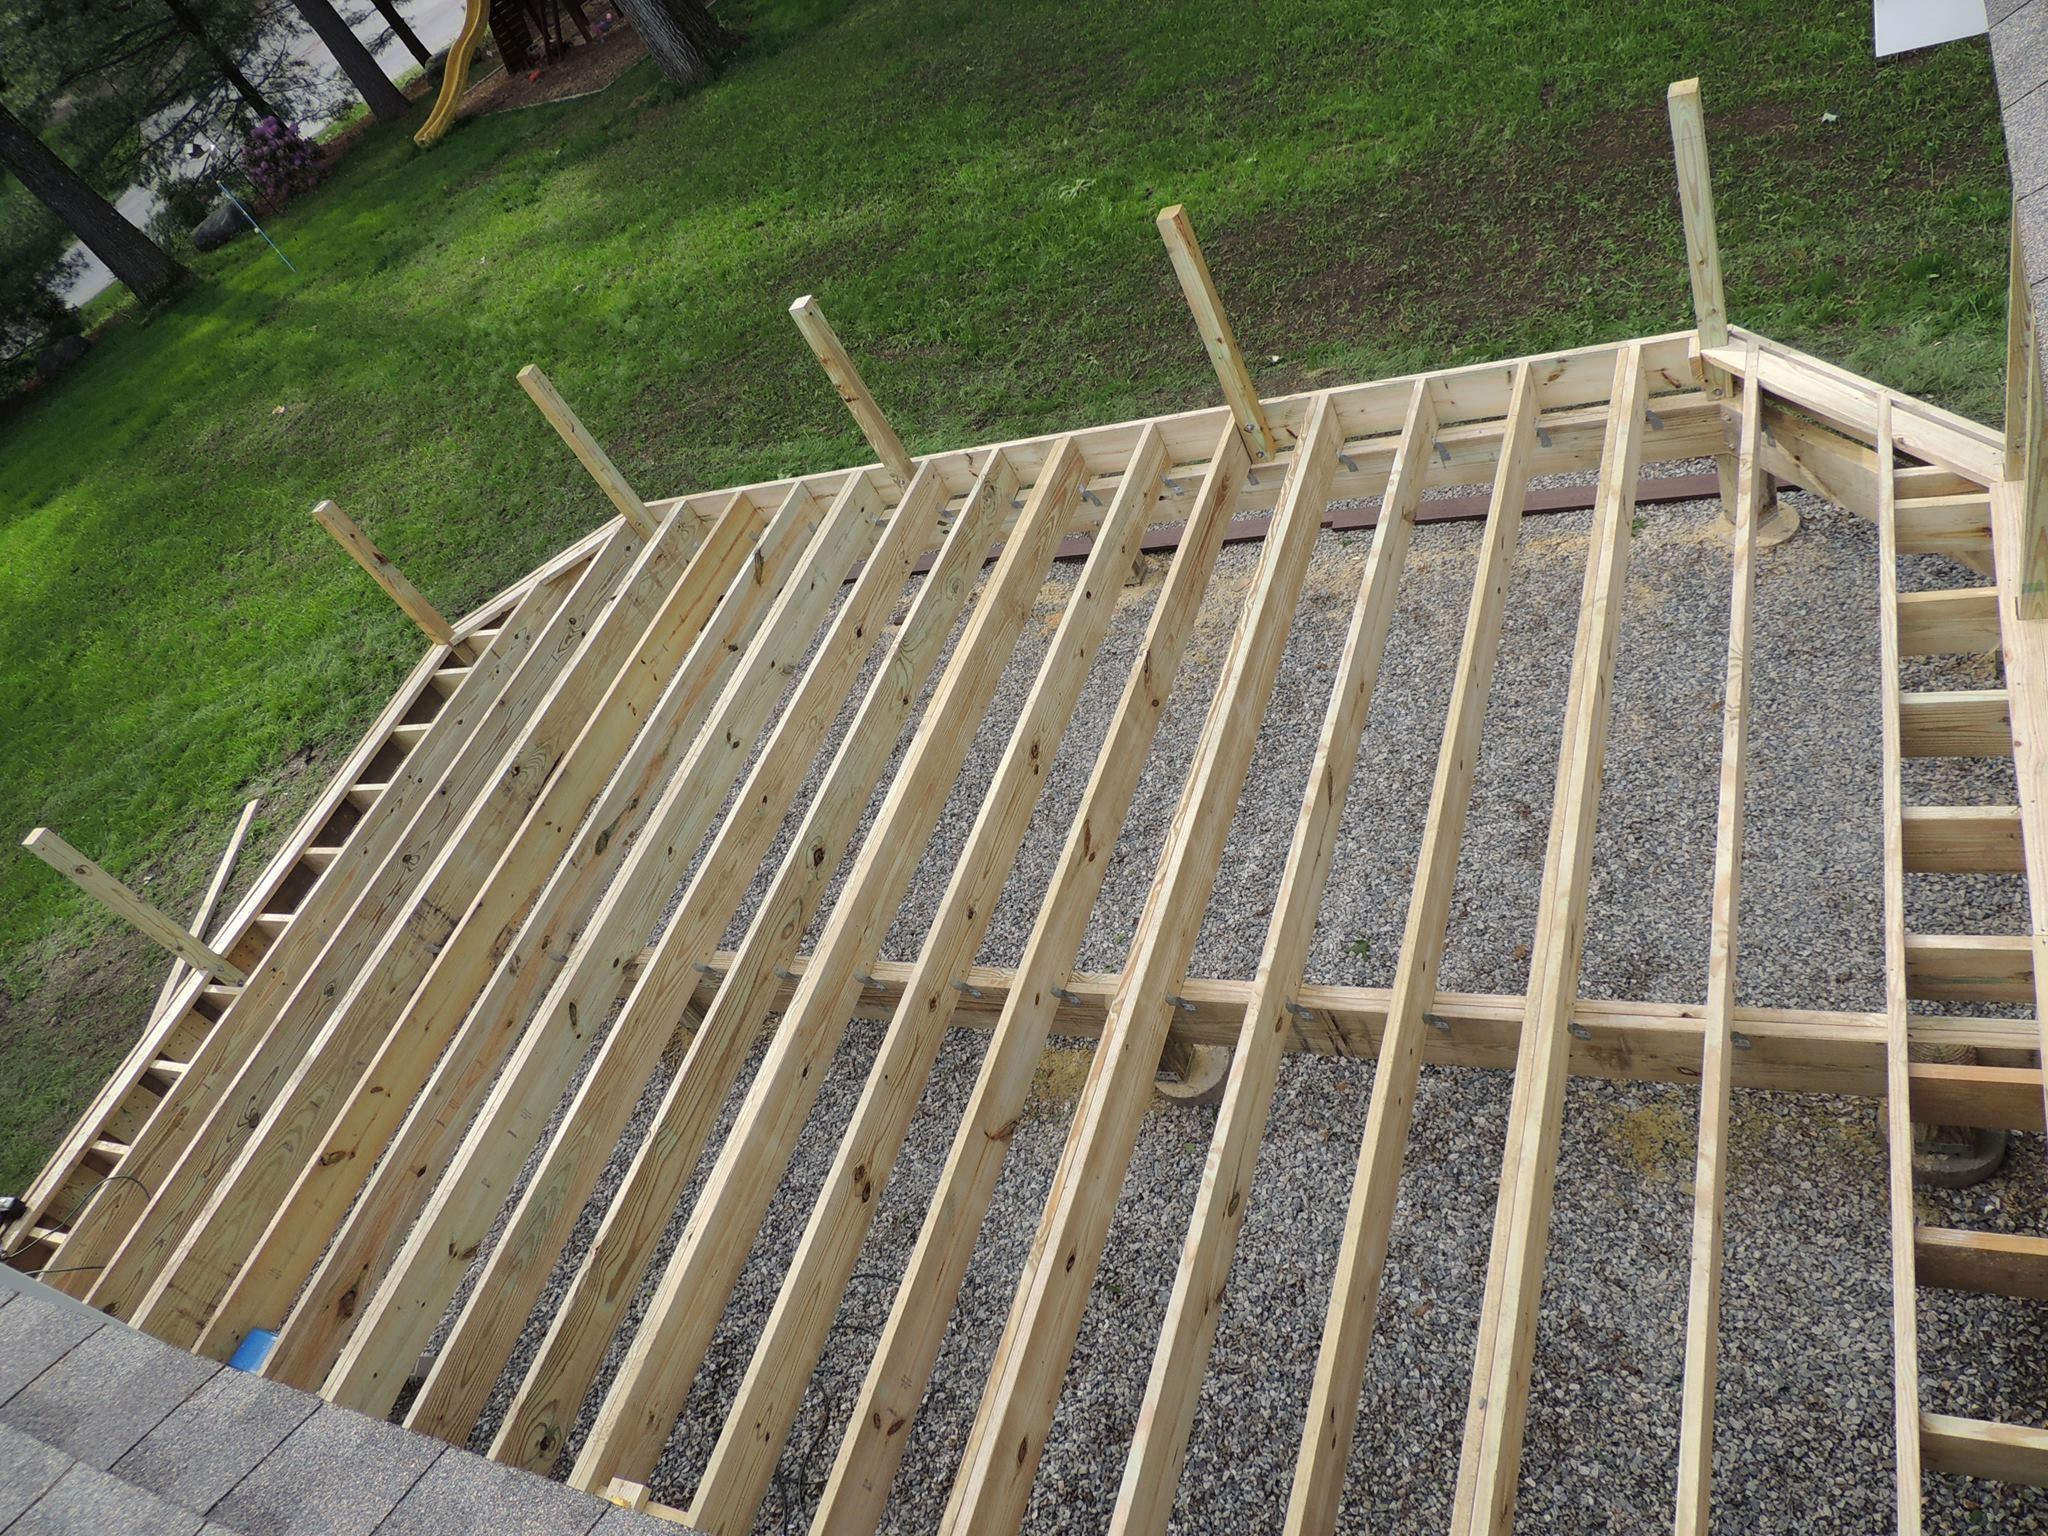 Installing Composite Decking | Composite Decking for Stairs | Lowes Deck Installation